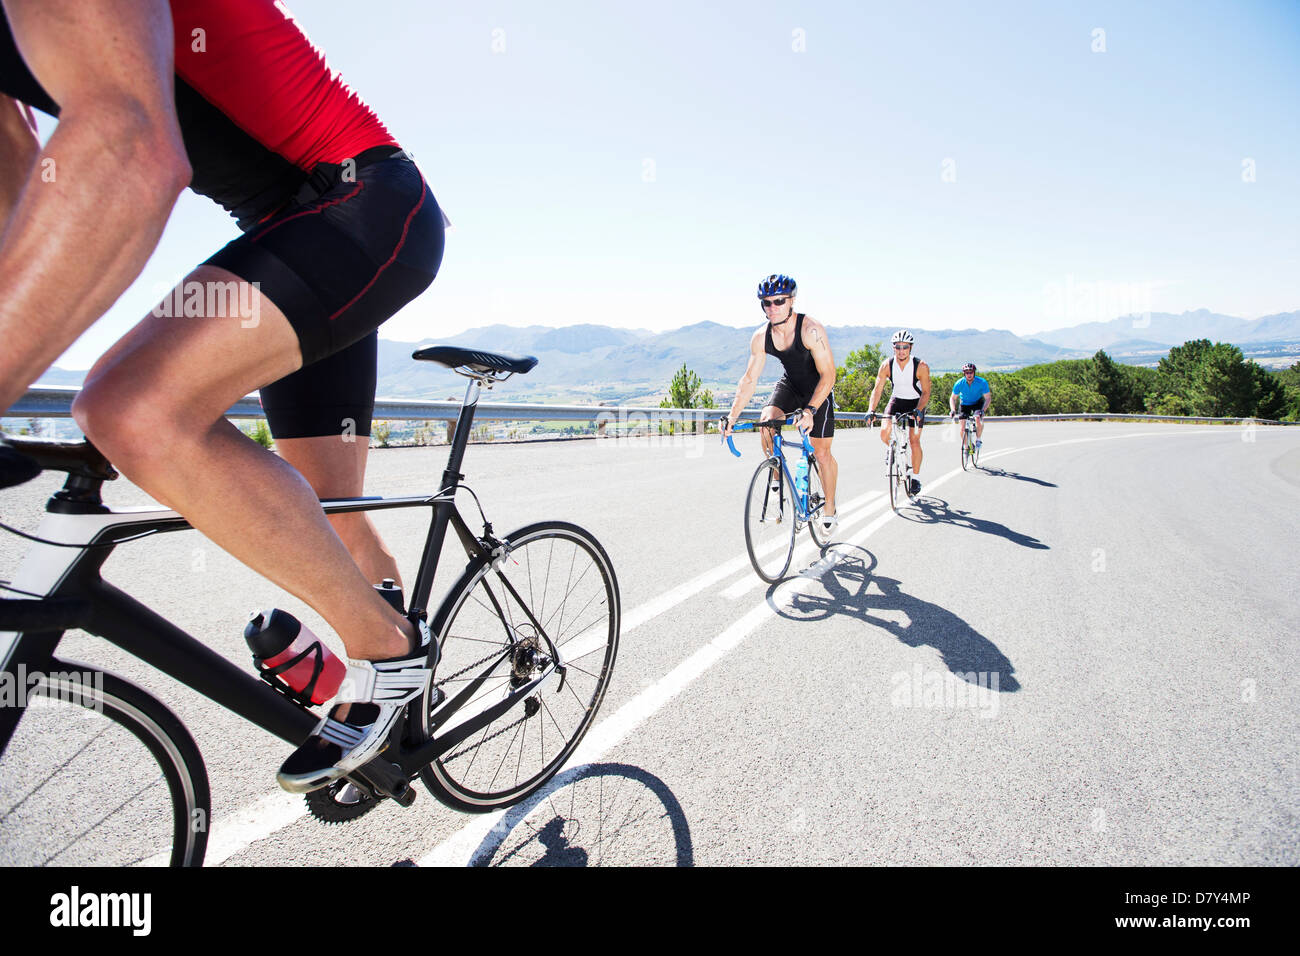 Cyclists in race on rural road - Stock Image